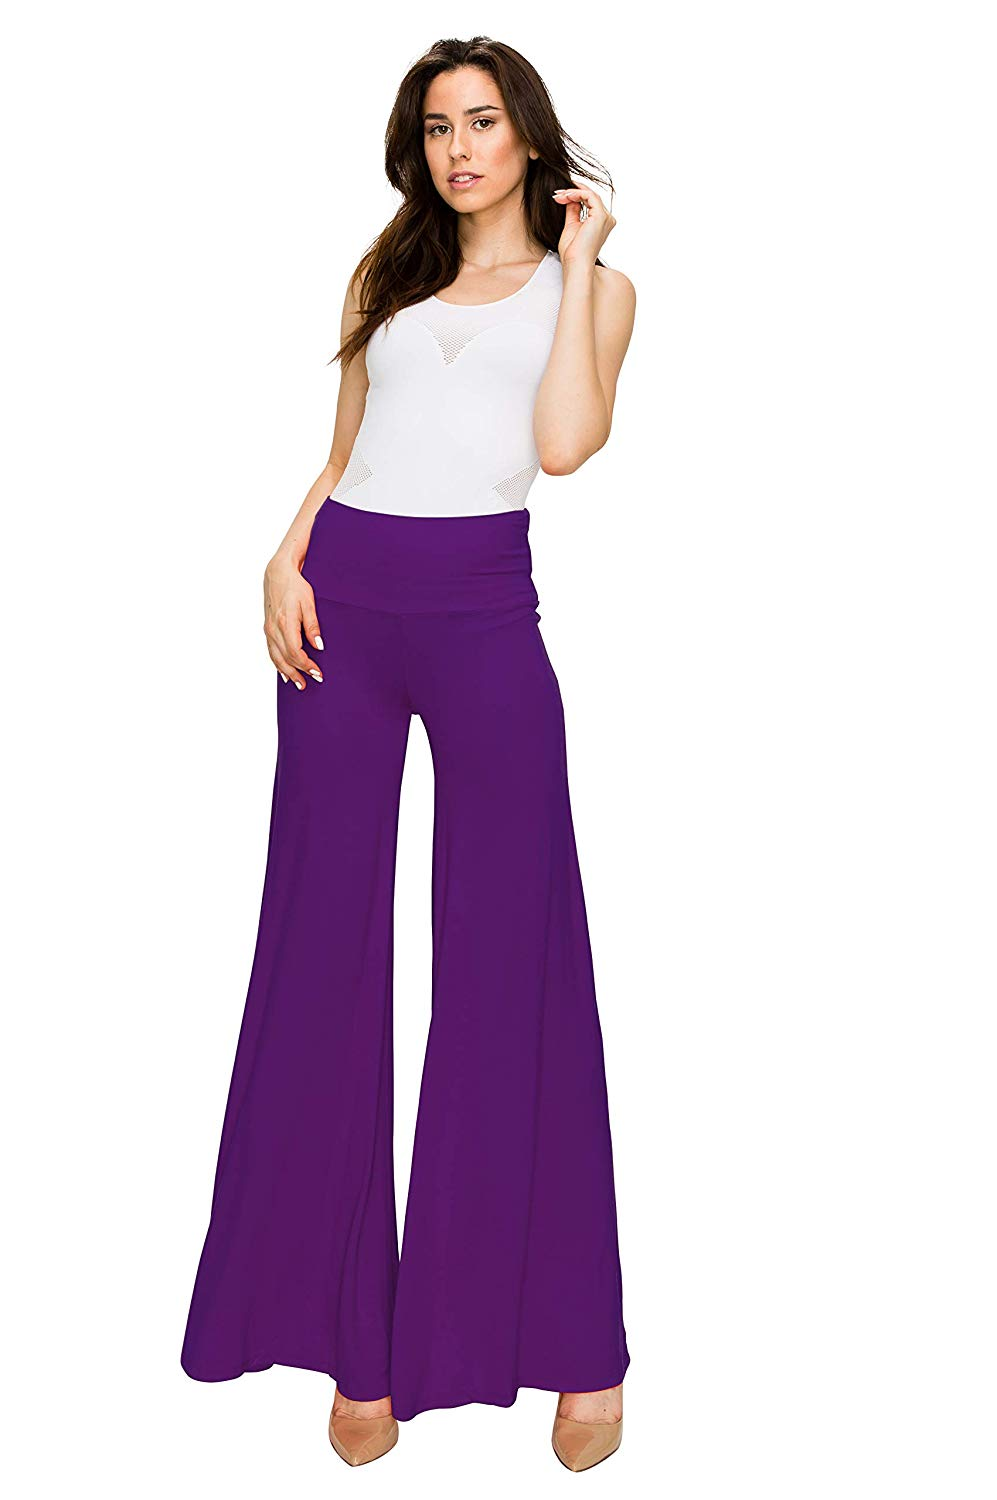 33 Pieces  Women's  Comfy Wide Leg  Pants (XS~5XL)2019 Cargo Pants  Harem Pants  Overalls